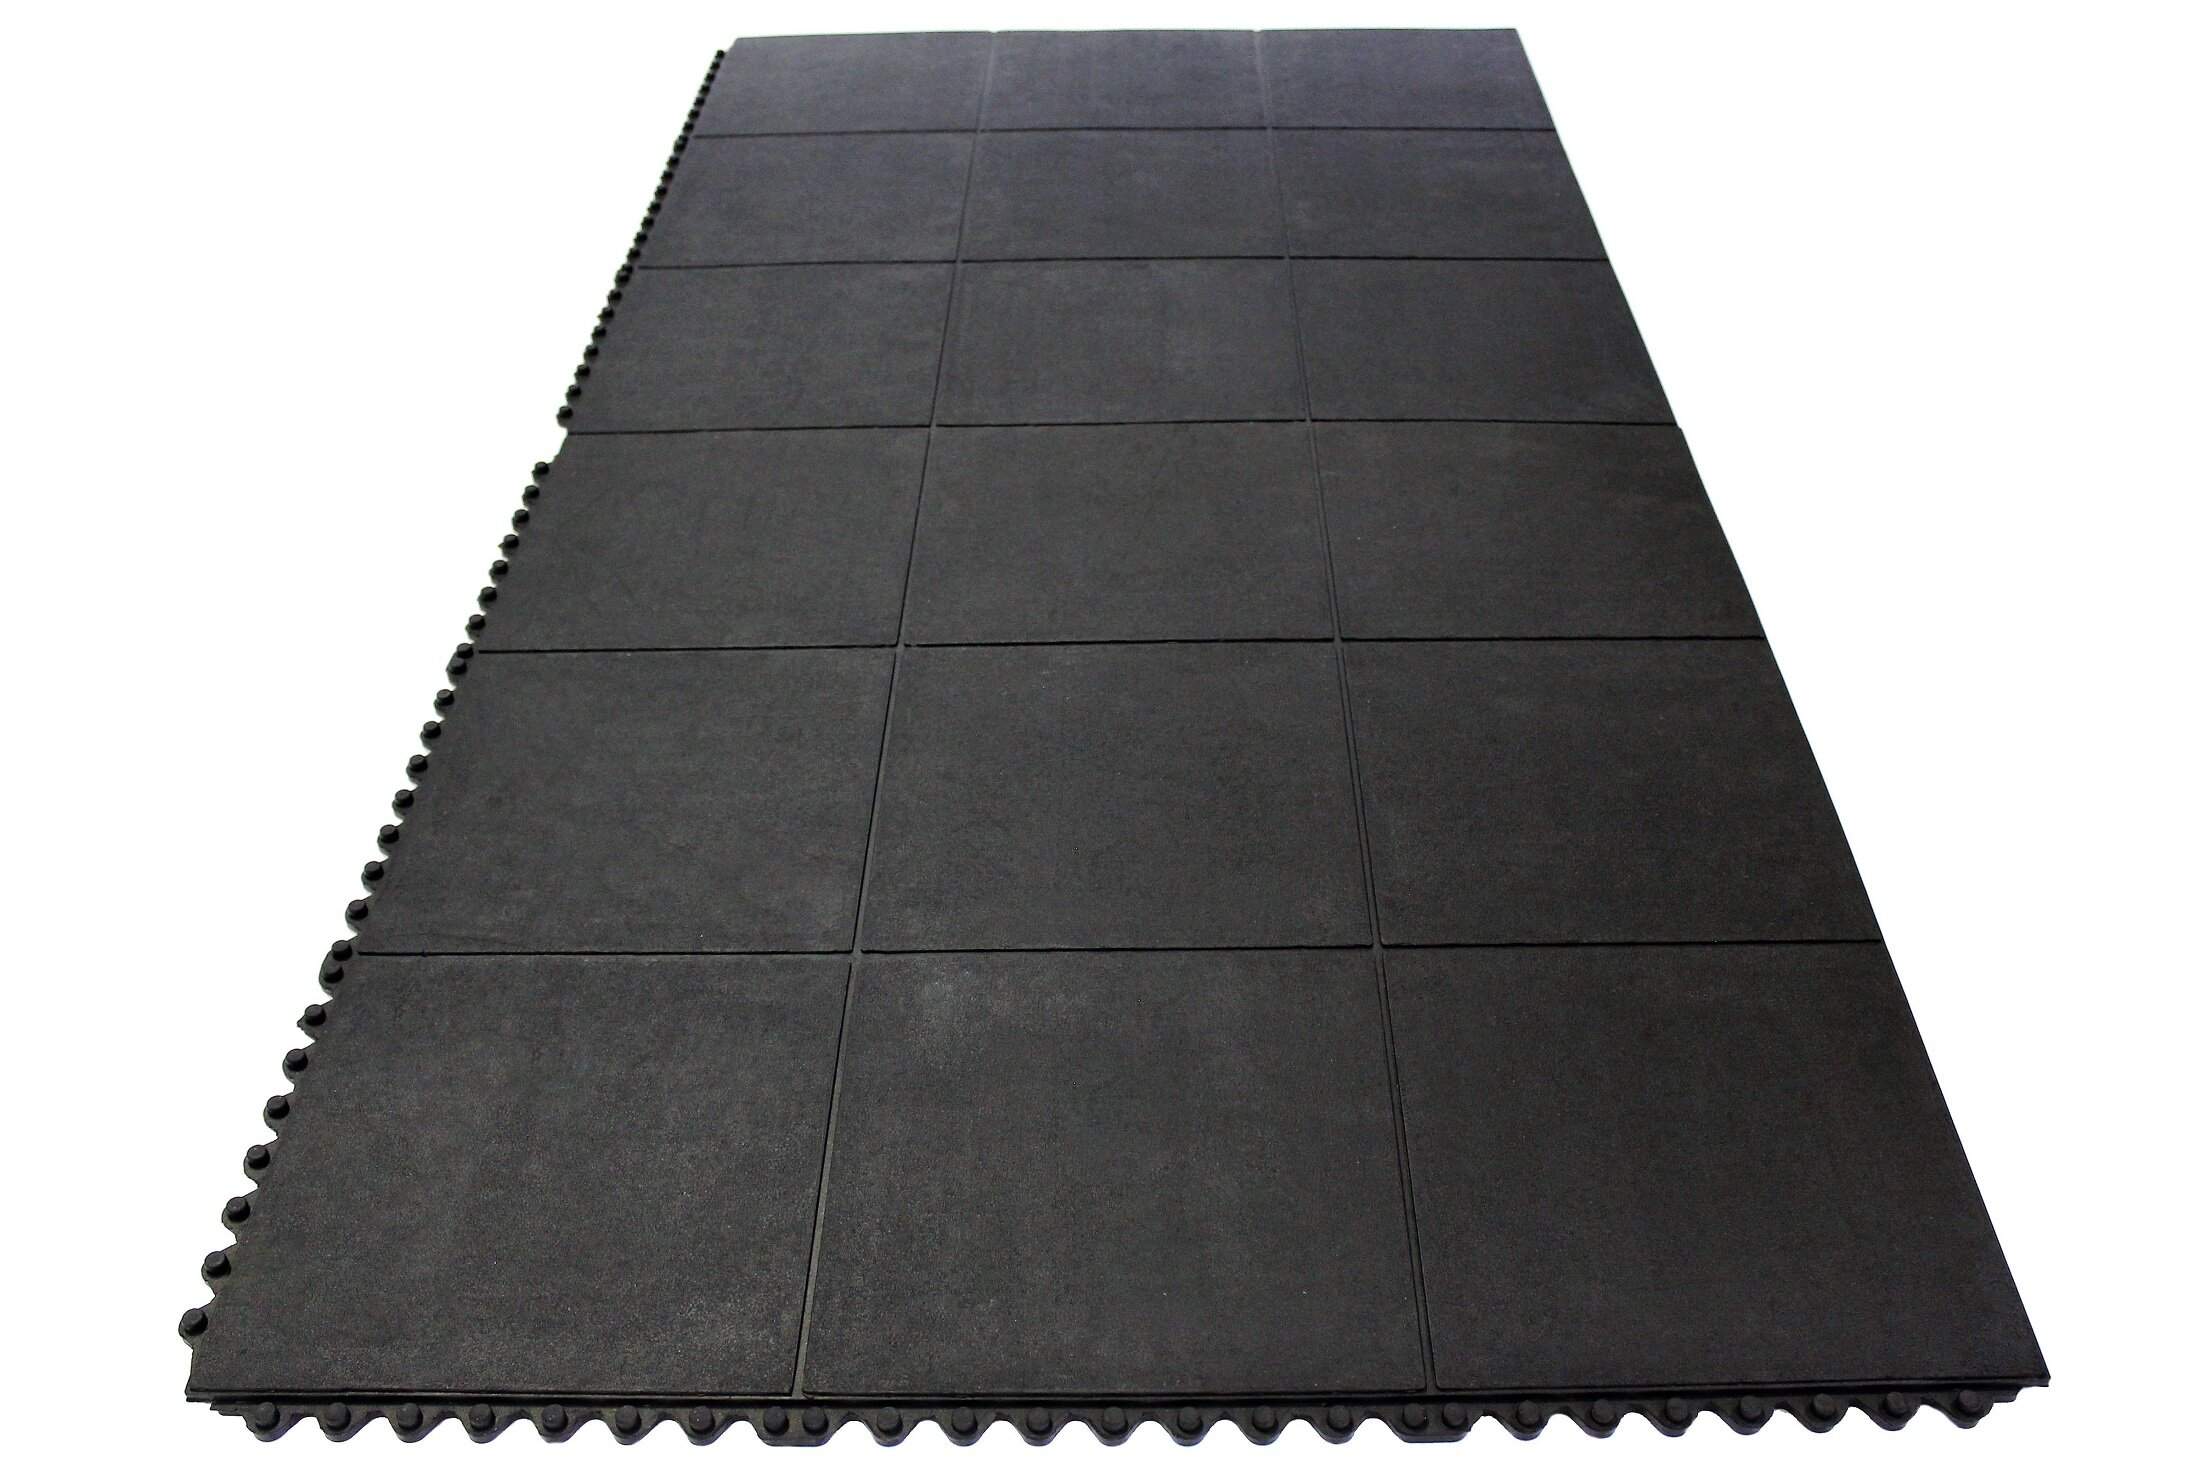 Envelor Home Heavy Duty Solid Rubber Garage Flooring Tiles In Black - Padded garage floor mats